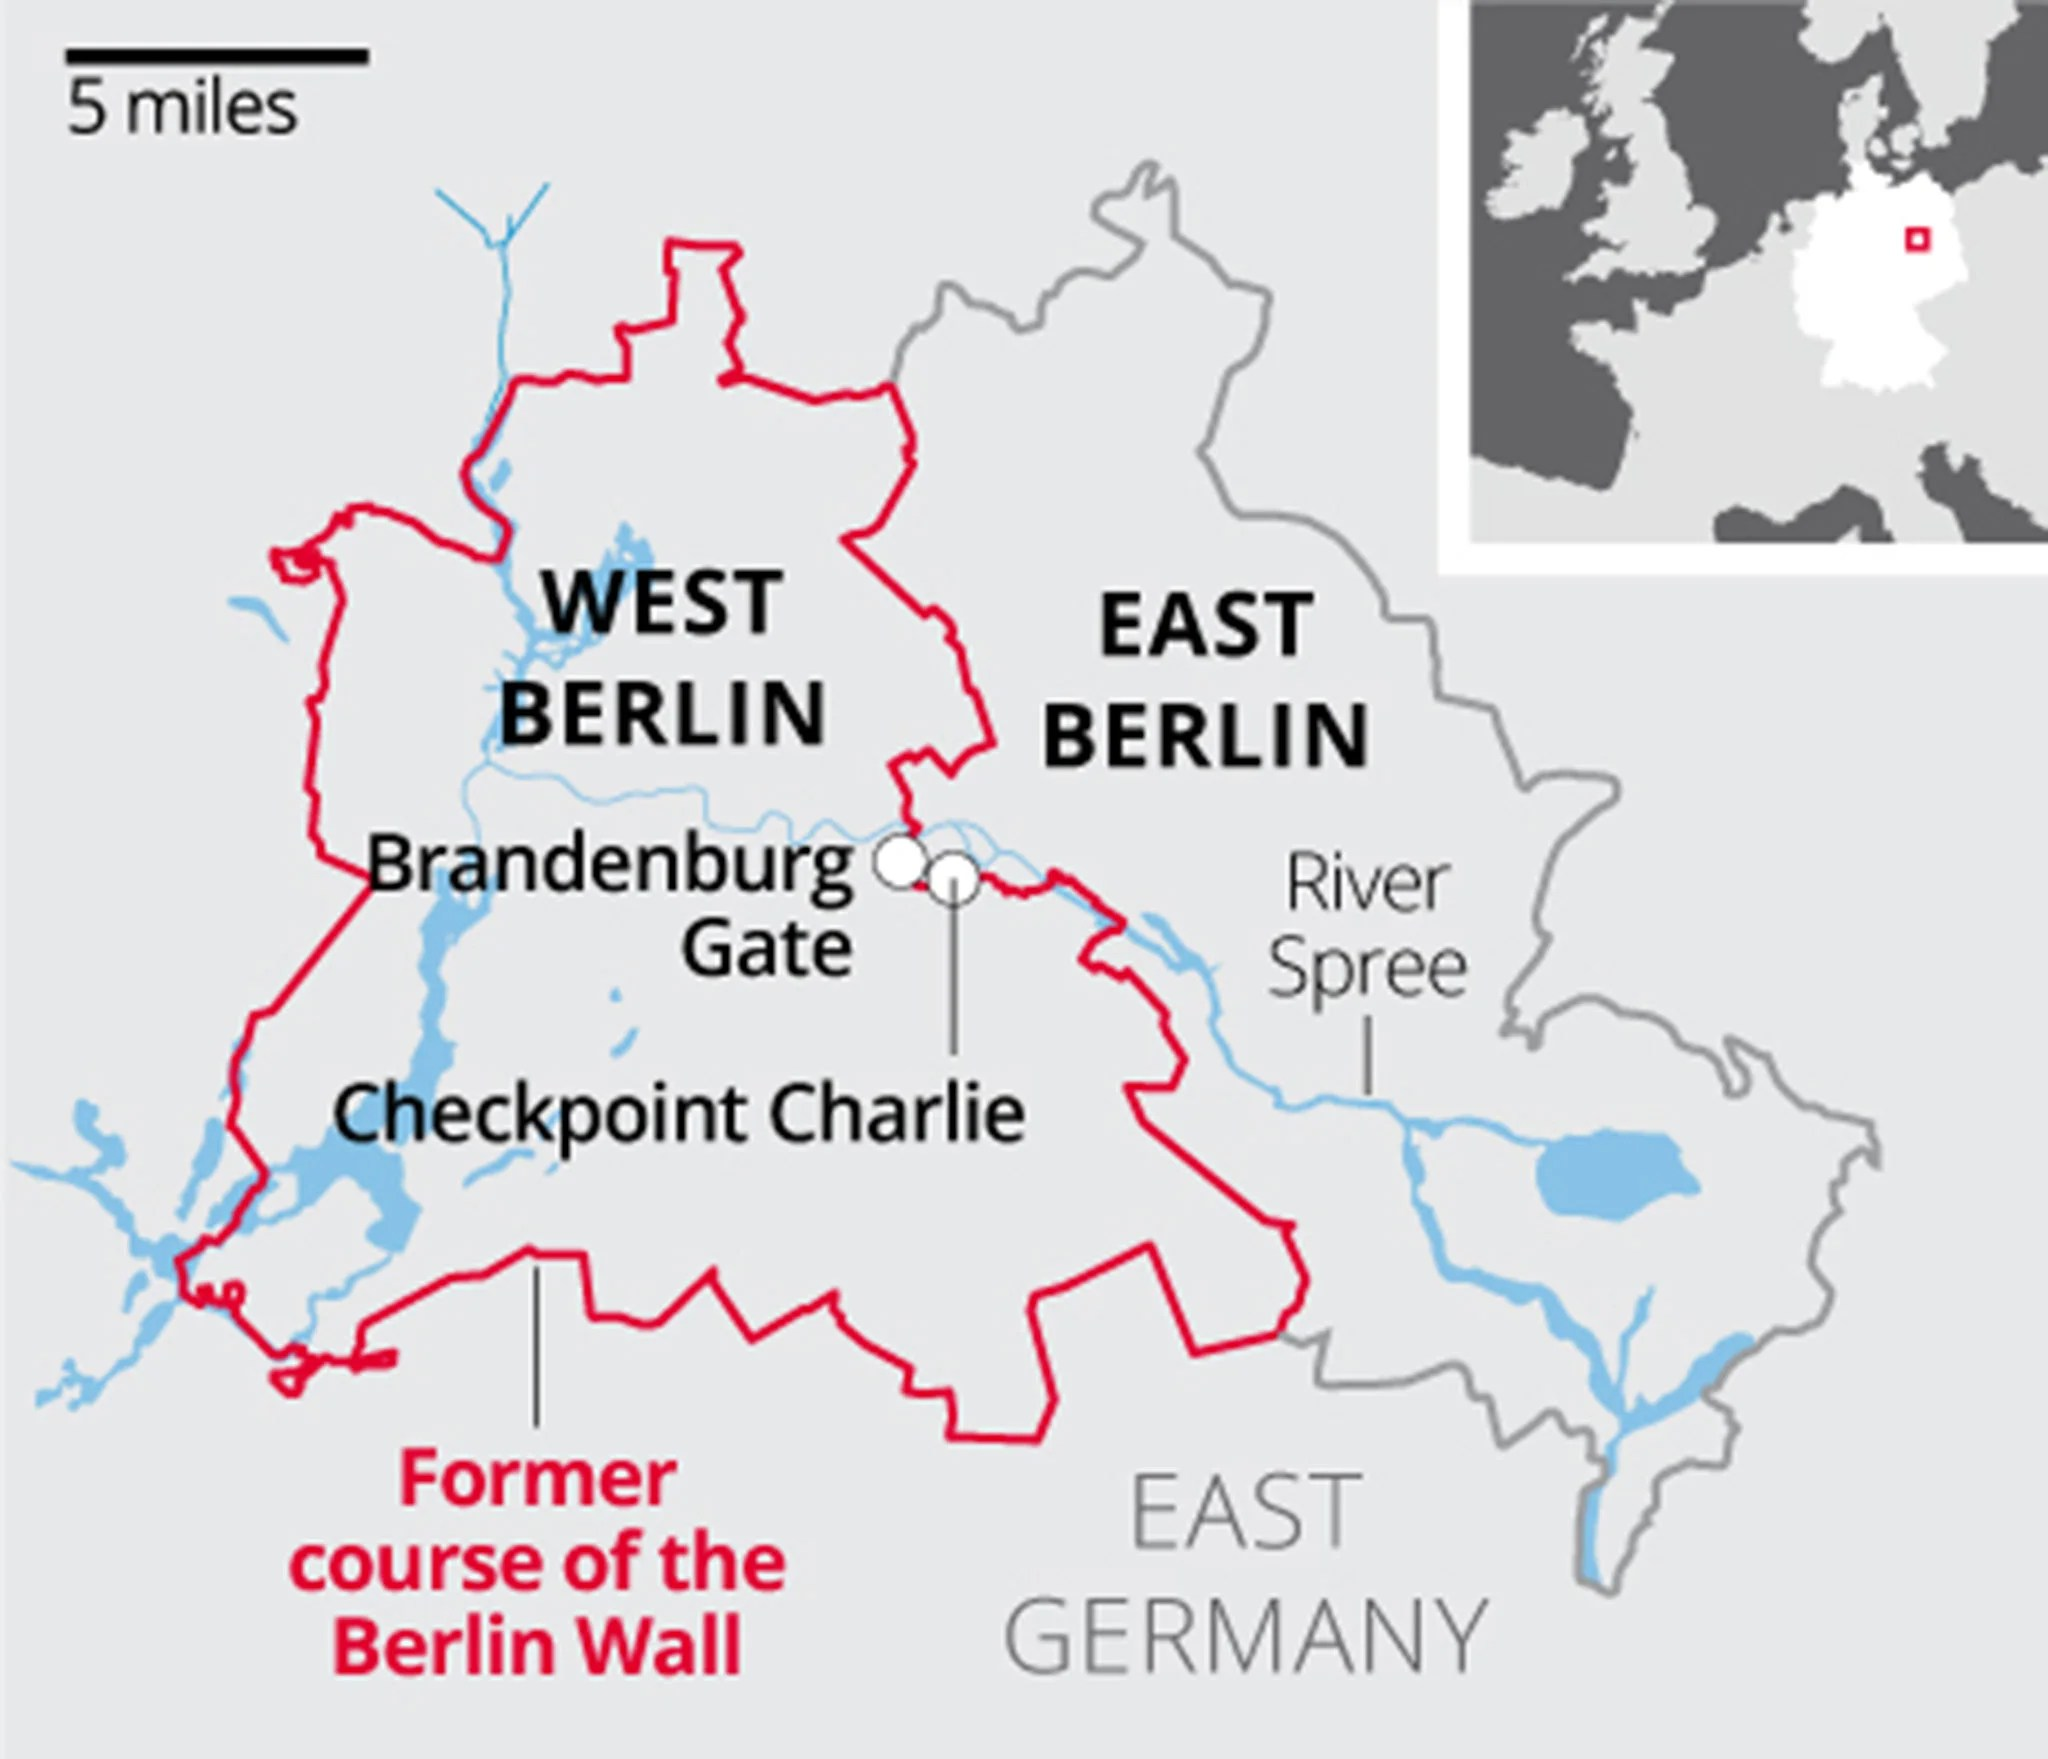 Iron Curtain Map Berlin Wall What You Need To Know About The Barrier That Divided